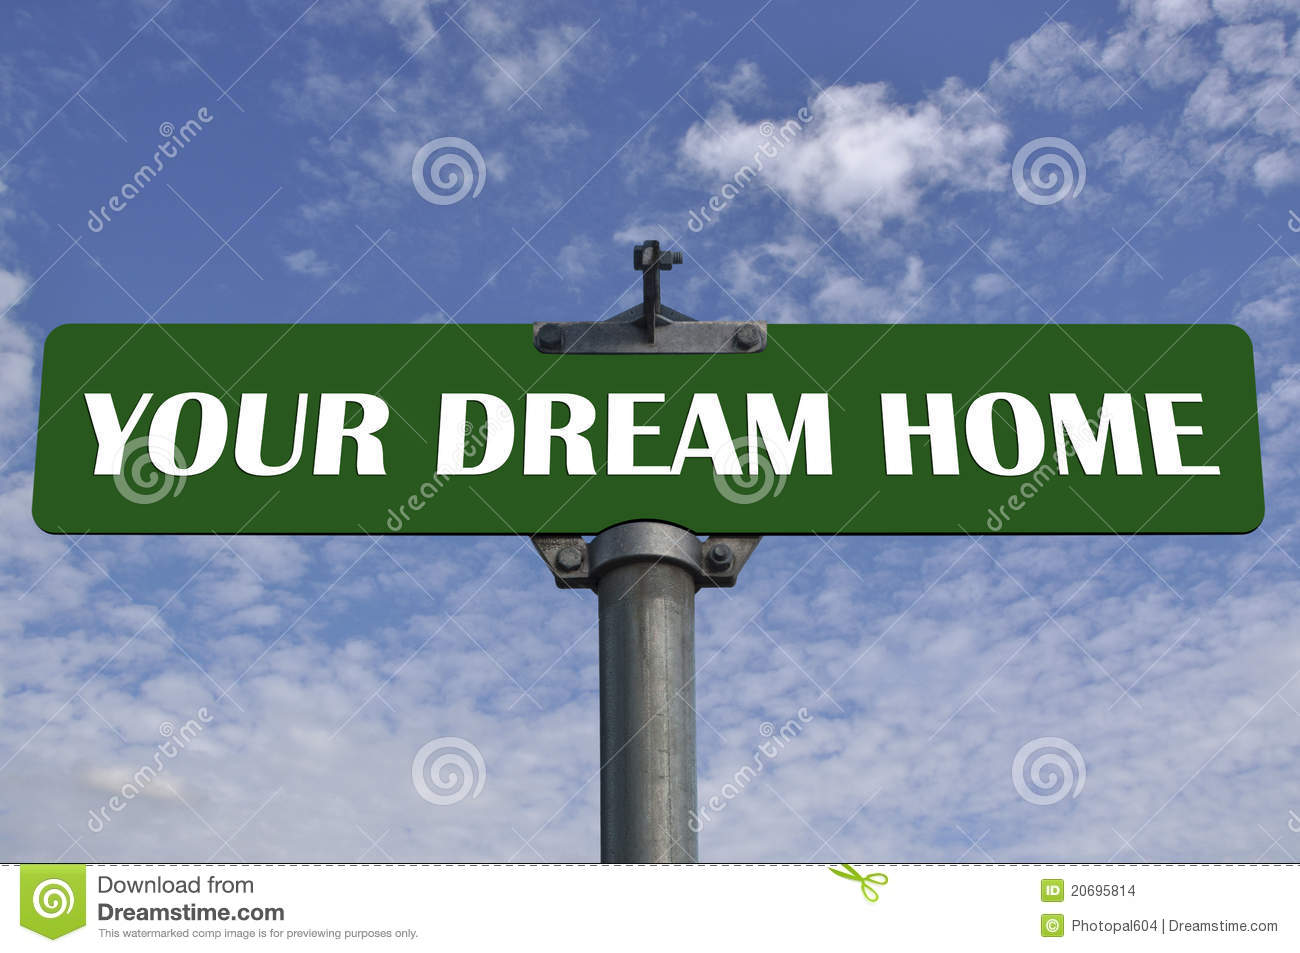 Your dream home road sign stock images image 20695814 for Build dream home online for fun